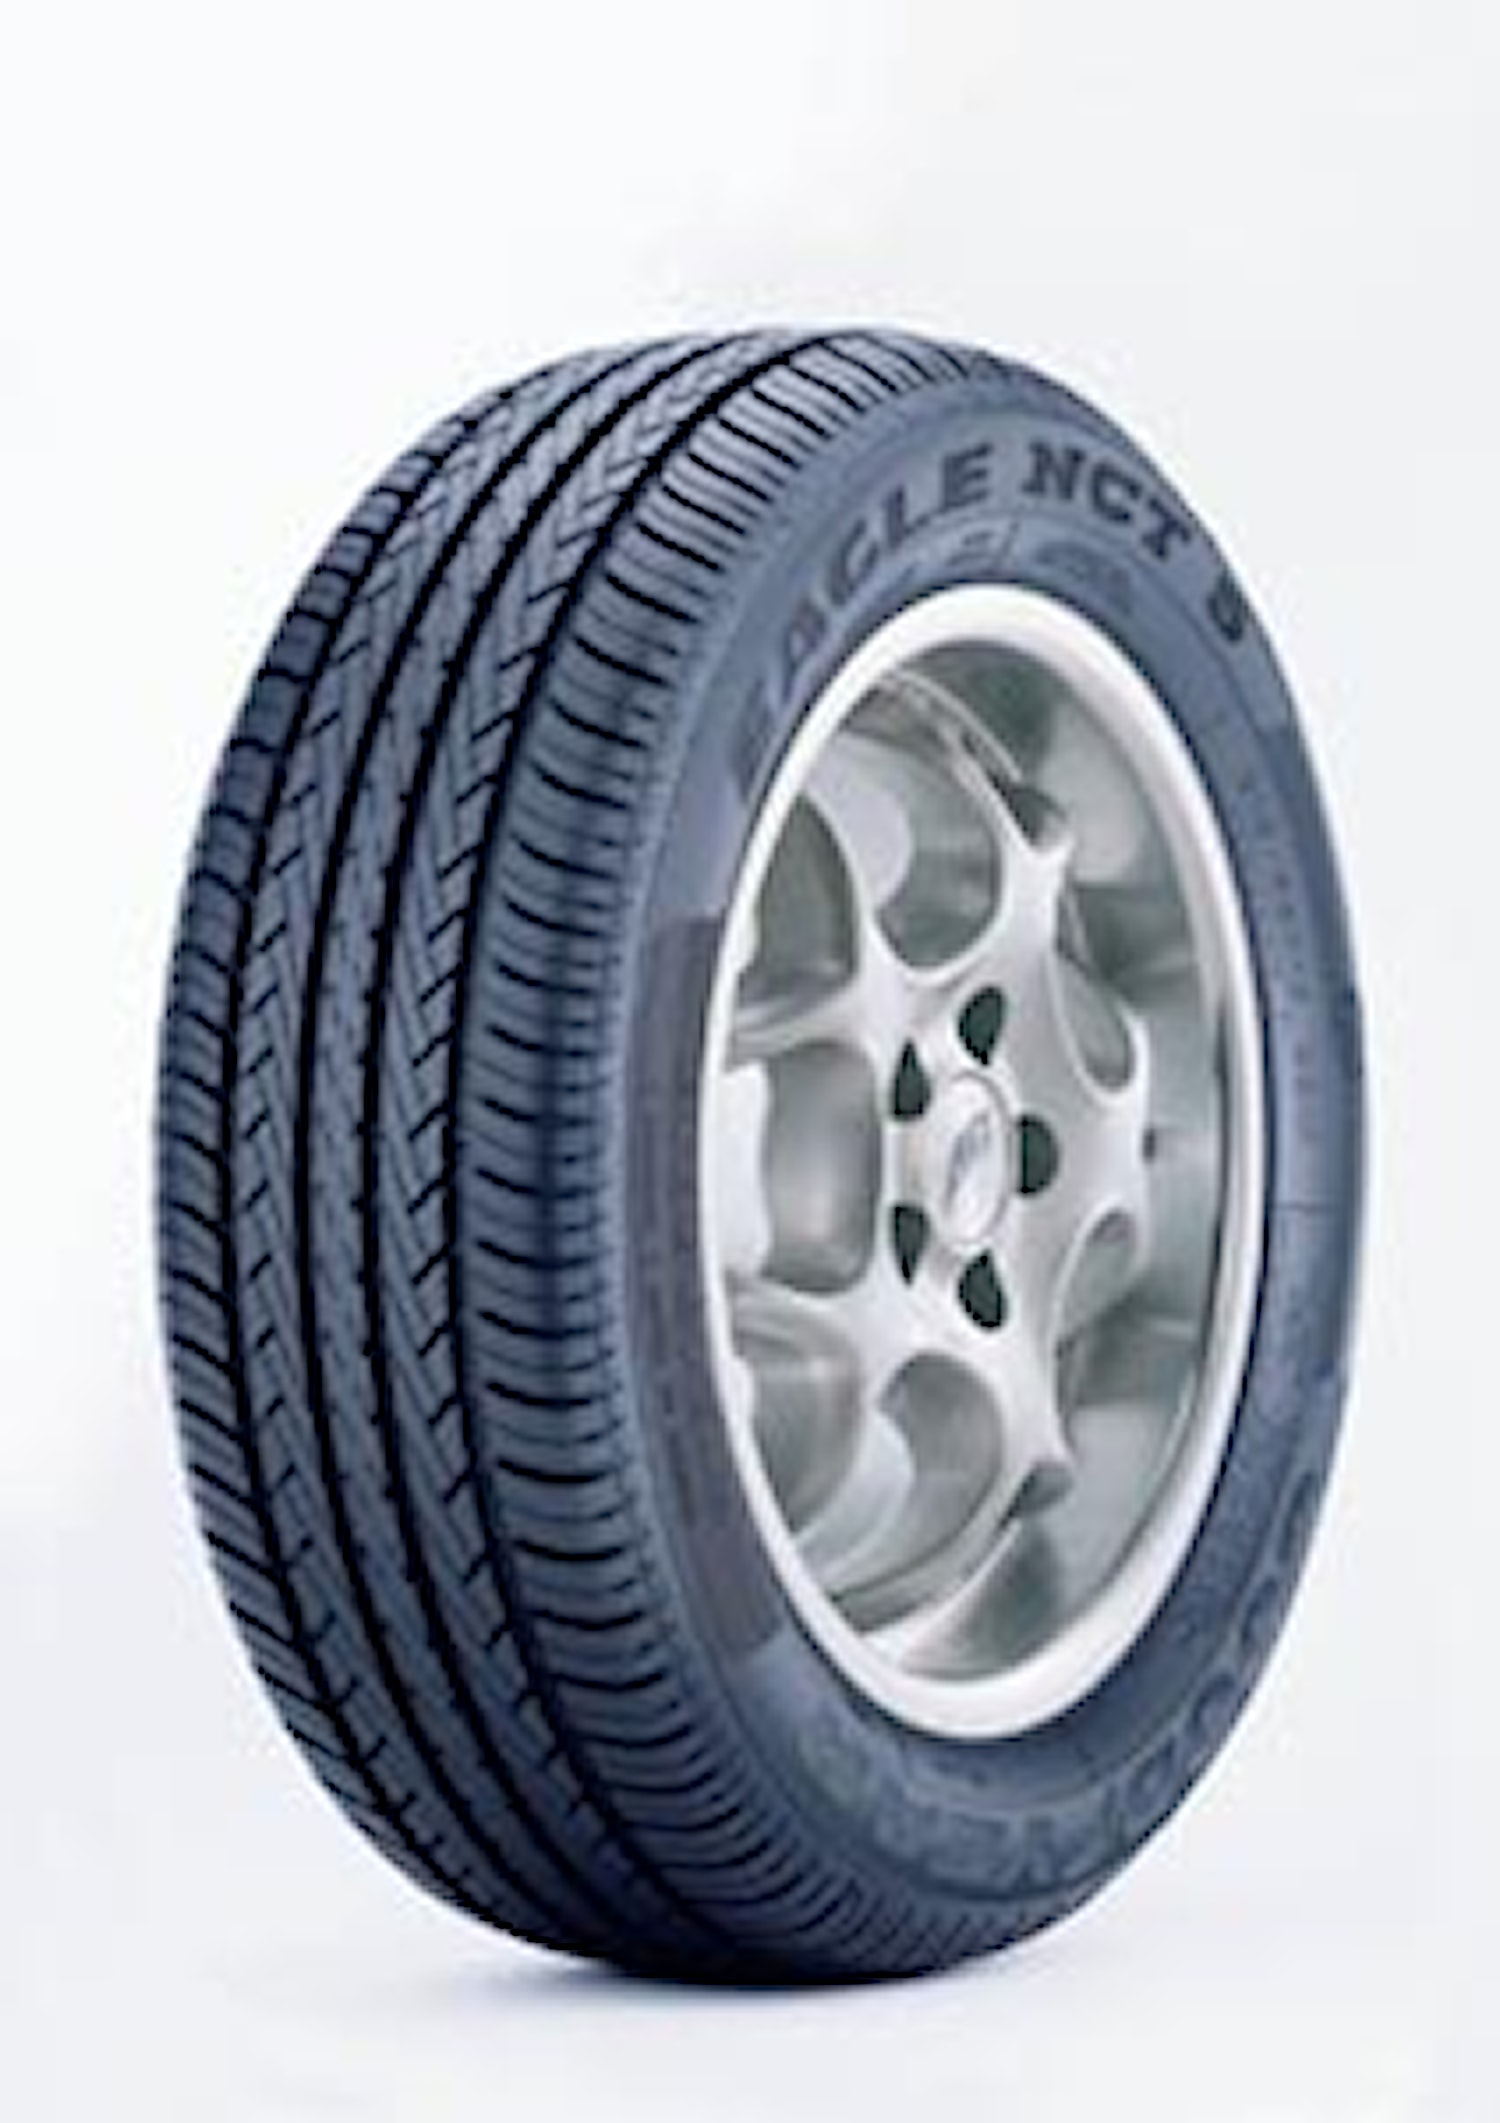 Goodyear EagleNCT5As.ROF* 106W